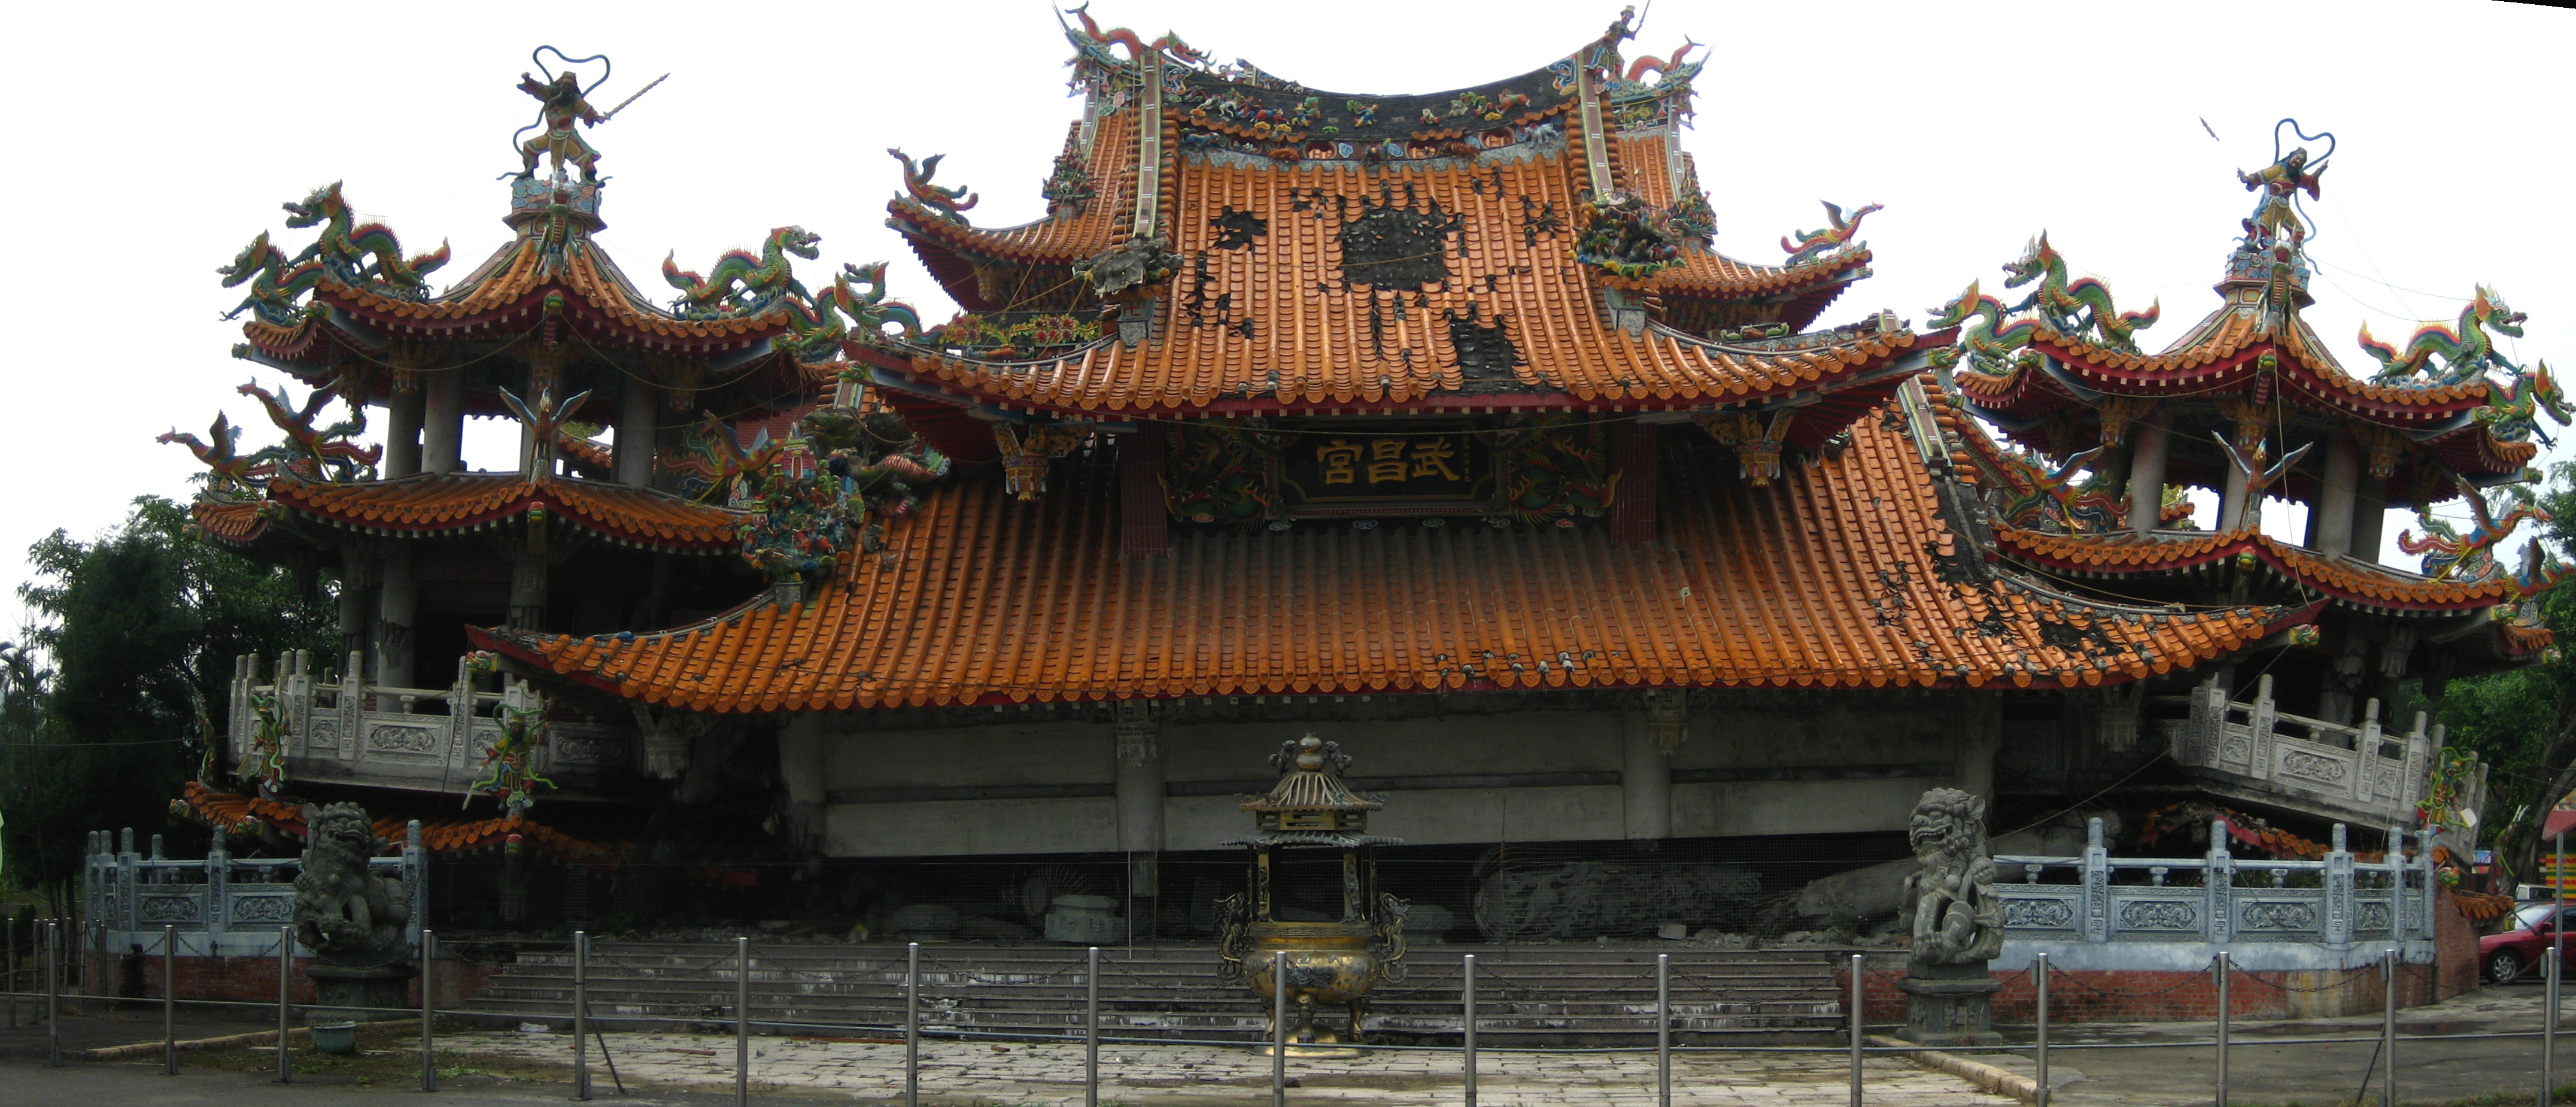 Wu-Chang Temple